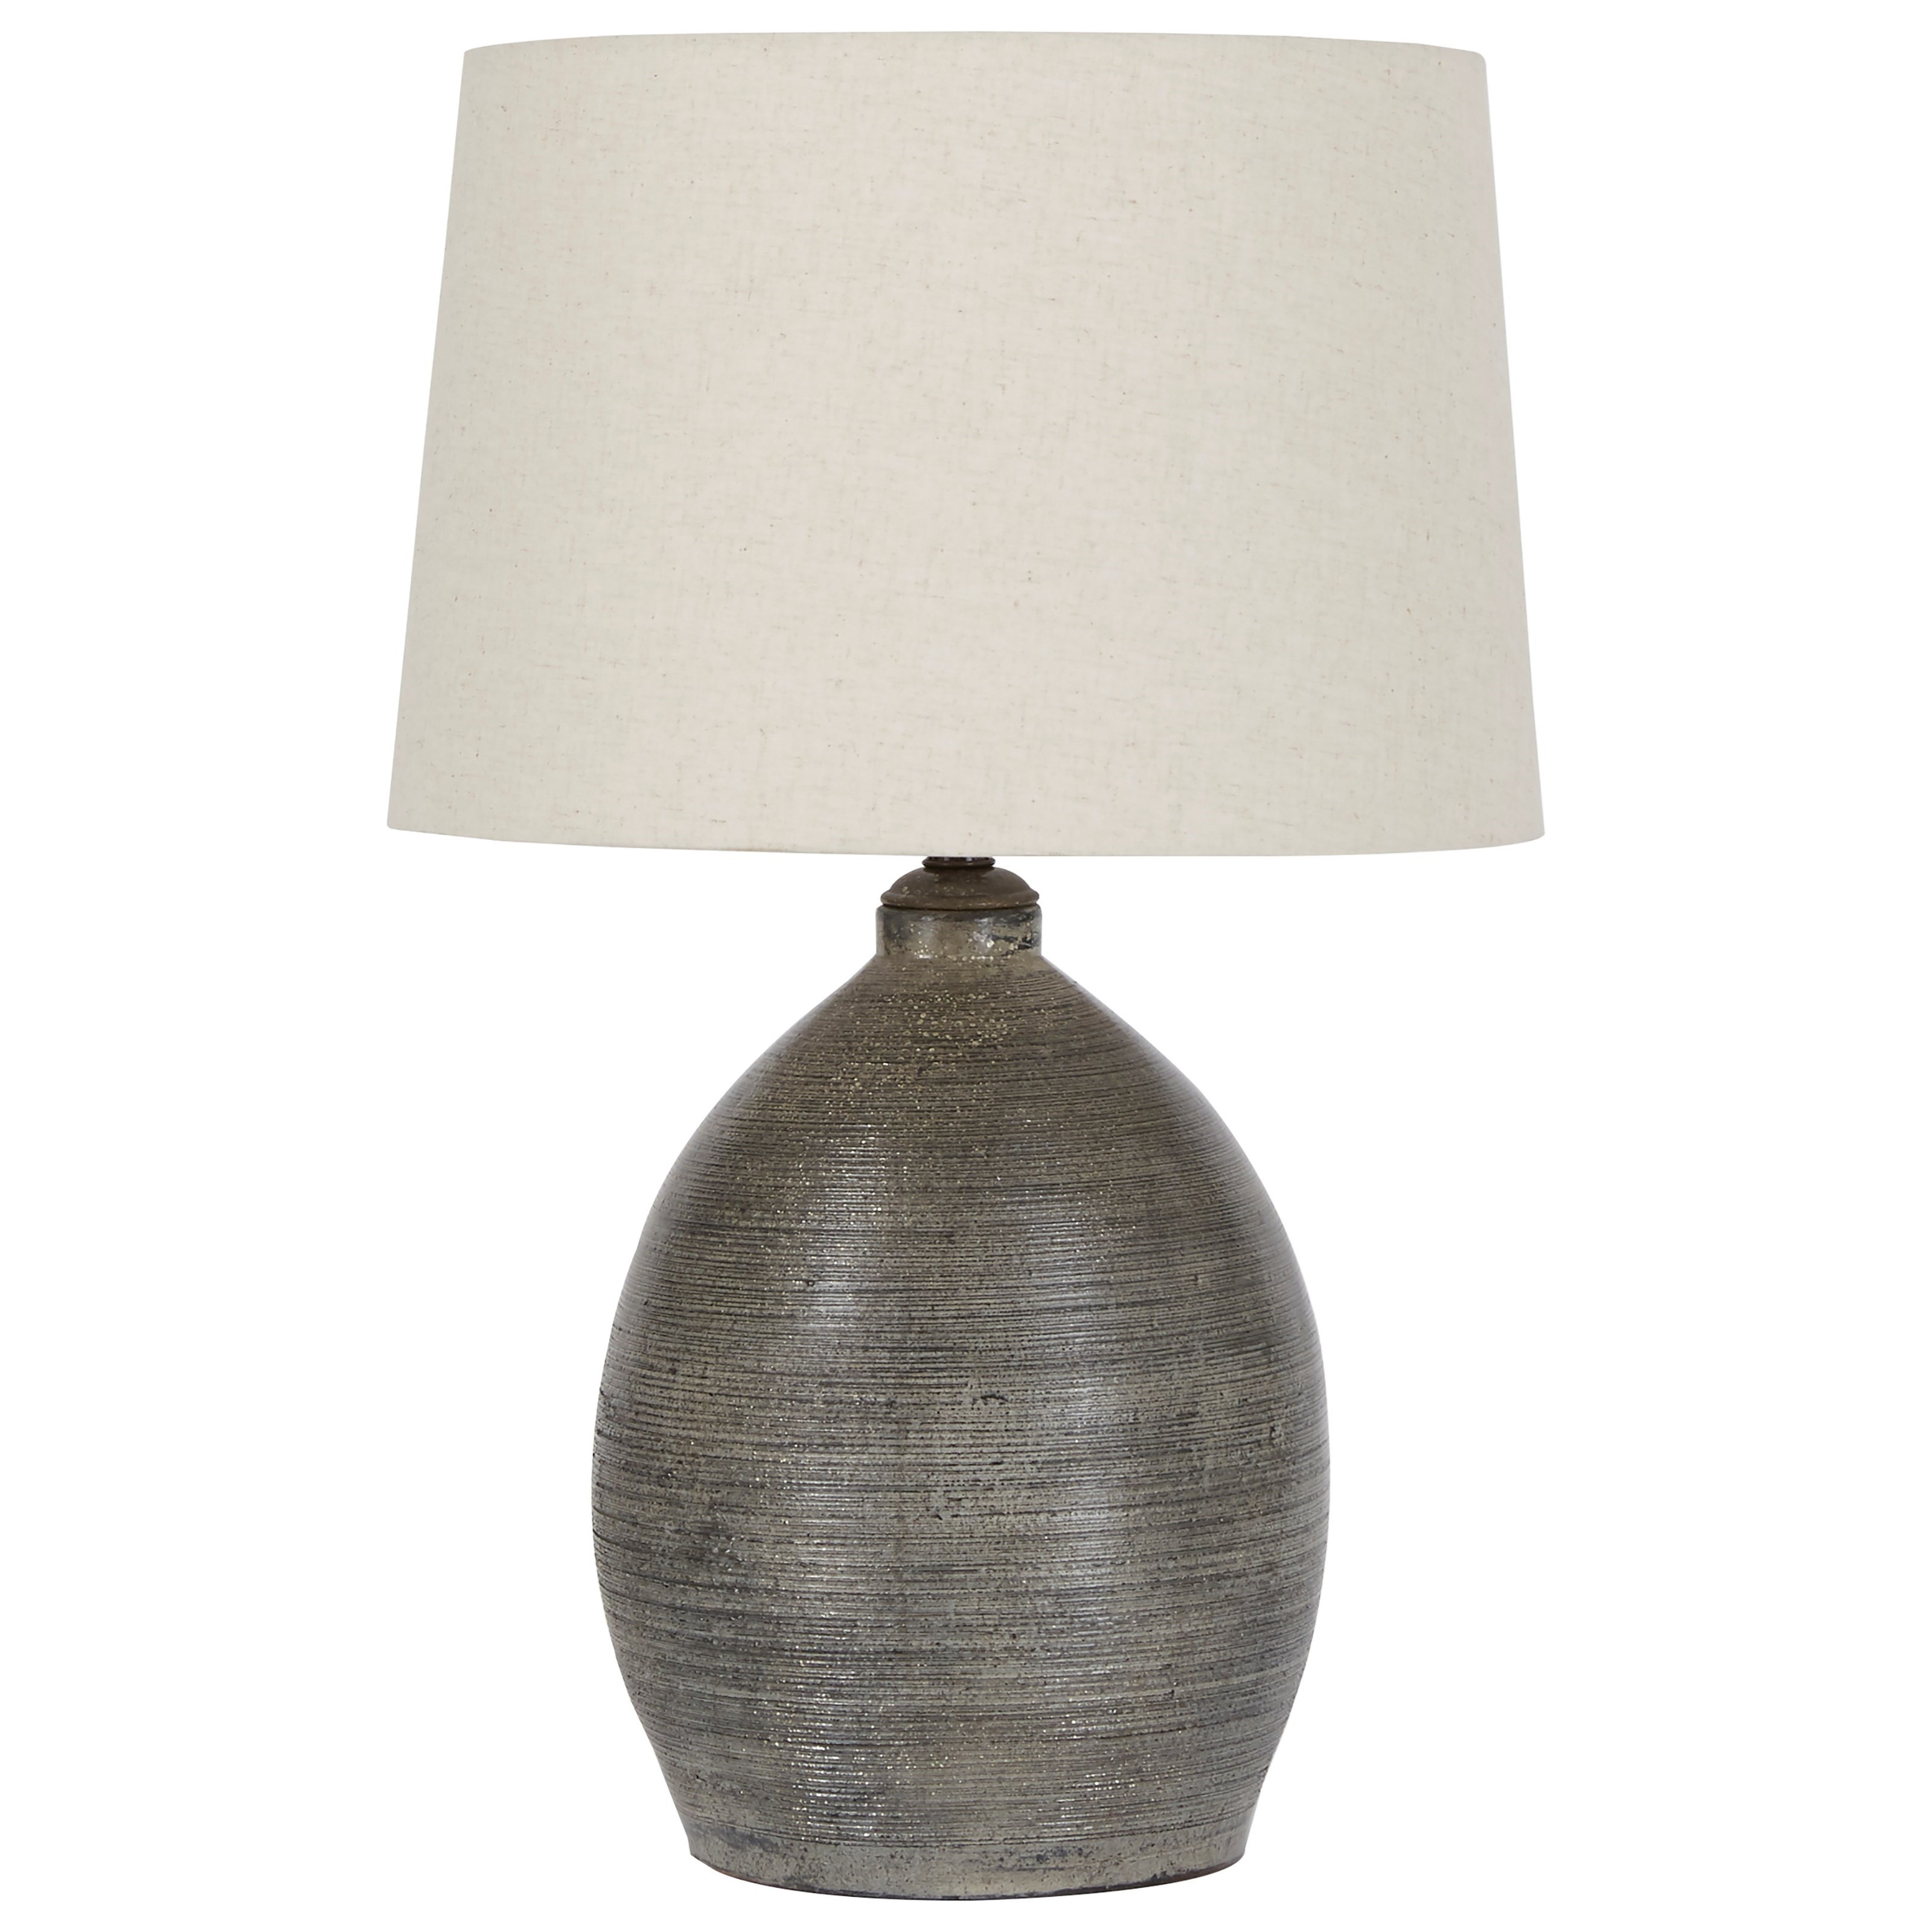 Lamps - Casual Joyelle Gray Terracotta Table Lamp by Signature Design by Ashley at Northeast Factory Direct